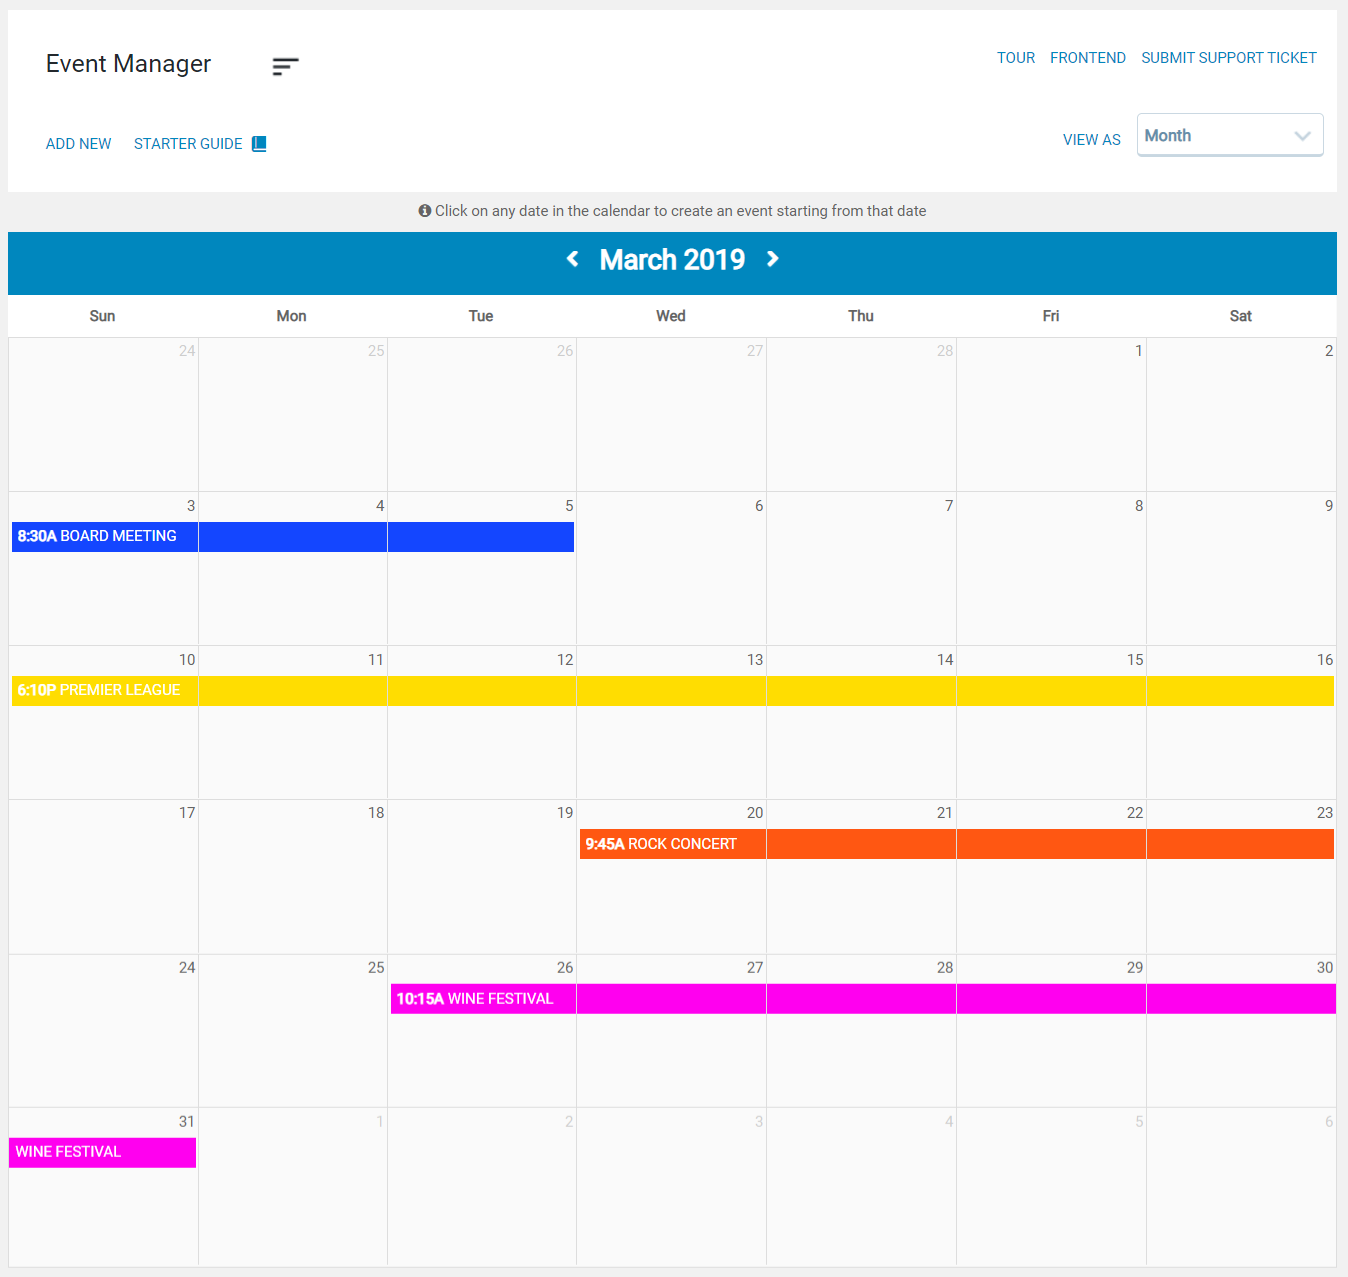 Event Manager Backend Page